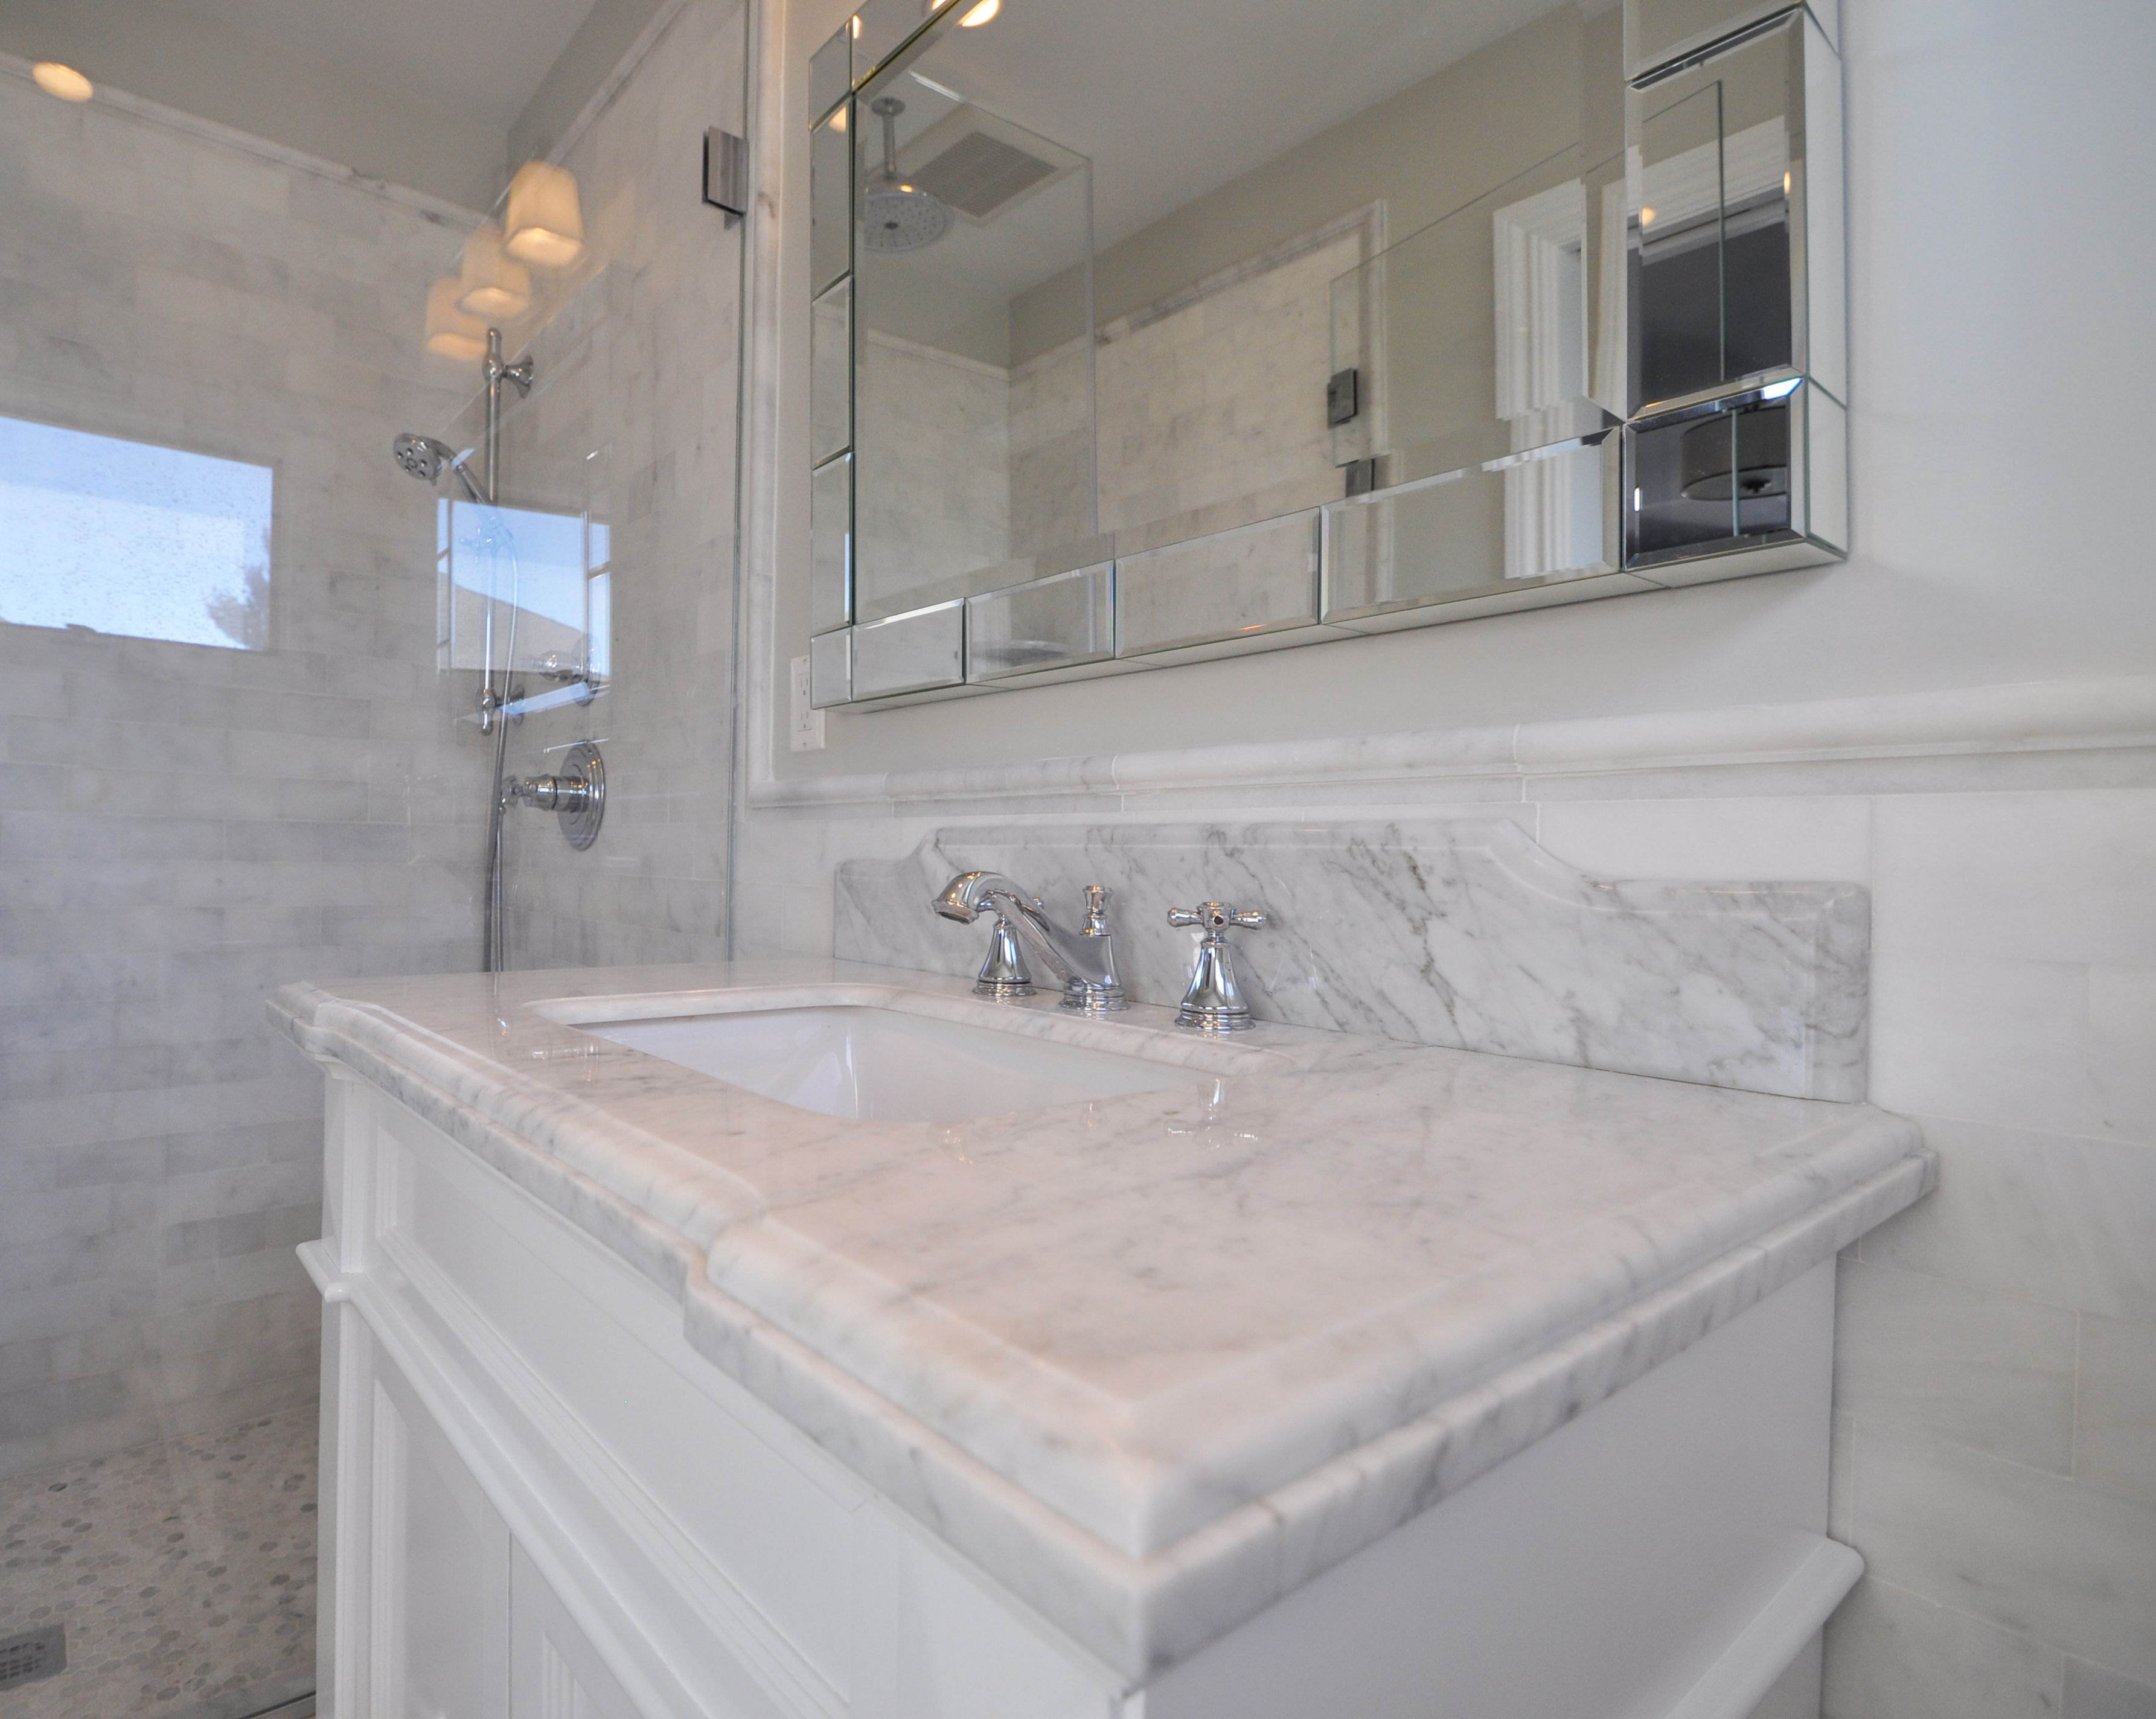 Marble Vanity top with Waterfall Edge & Chrome Fixtures